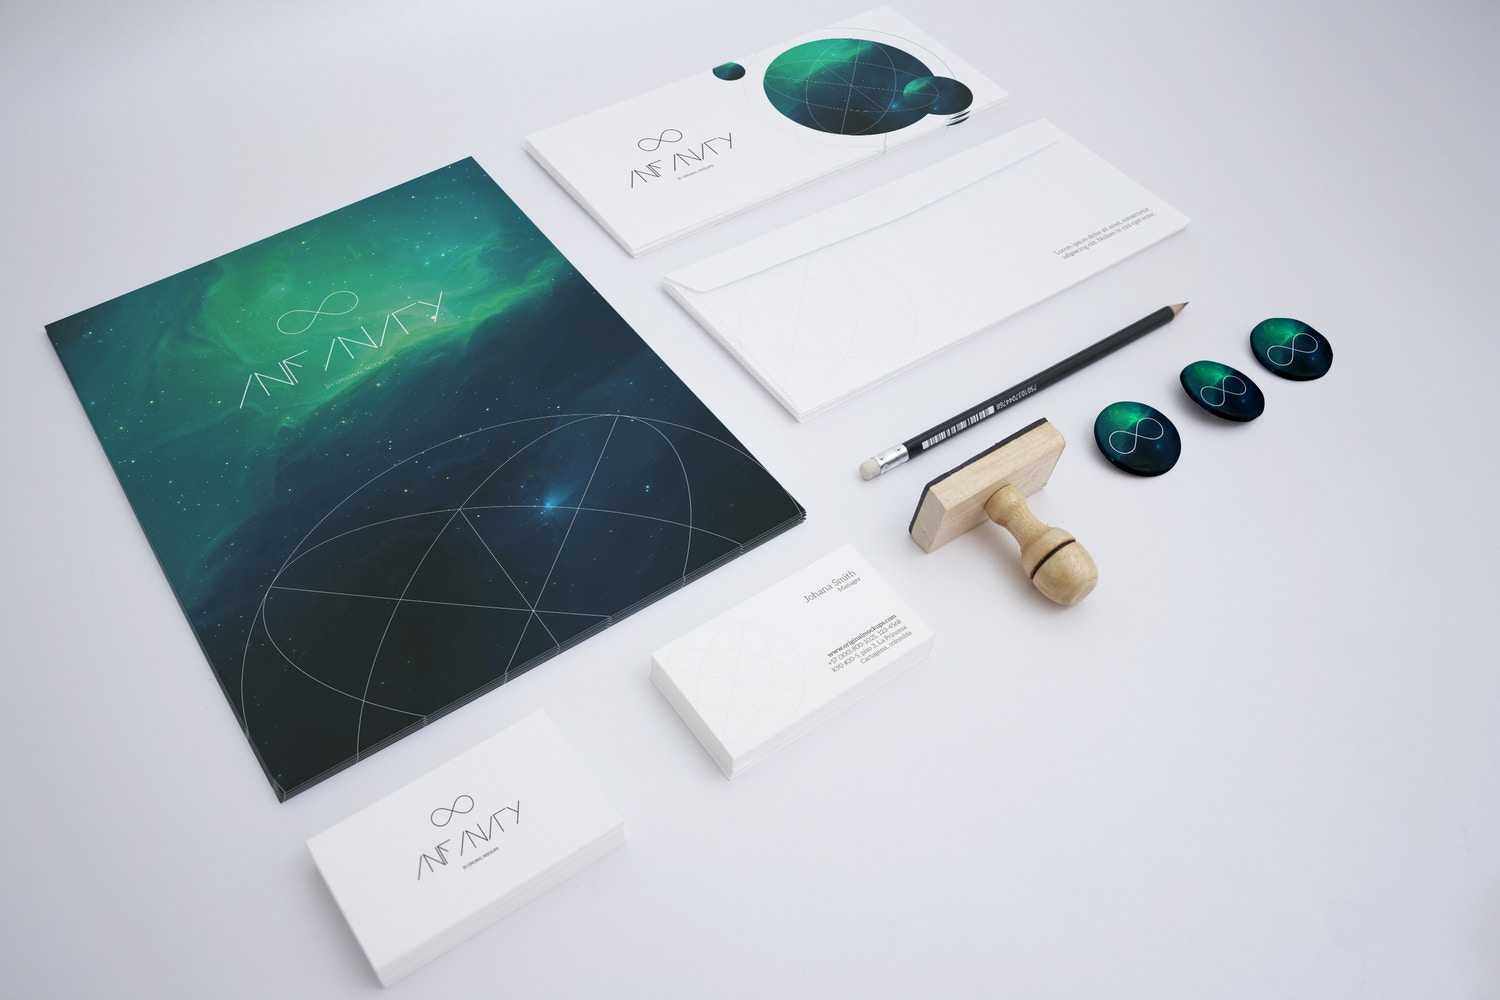 Stationery Mockup 1 by Original Mockups on Original Mockups